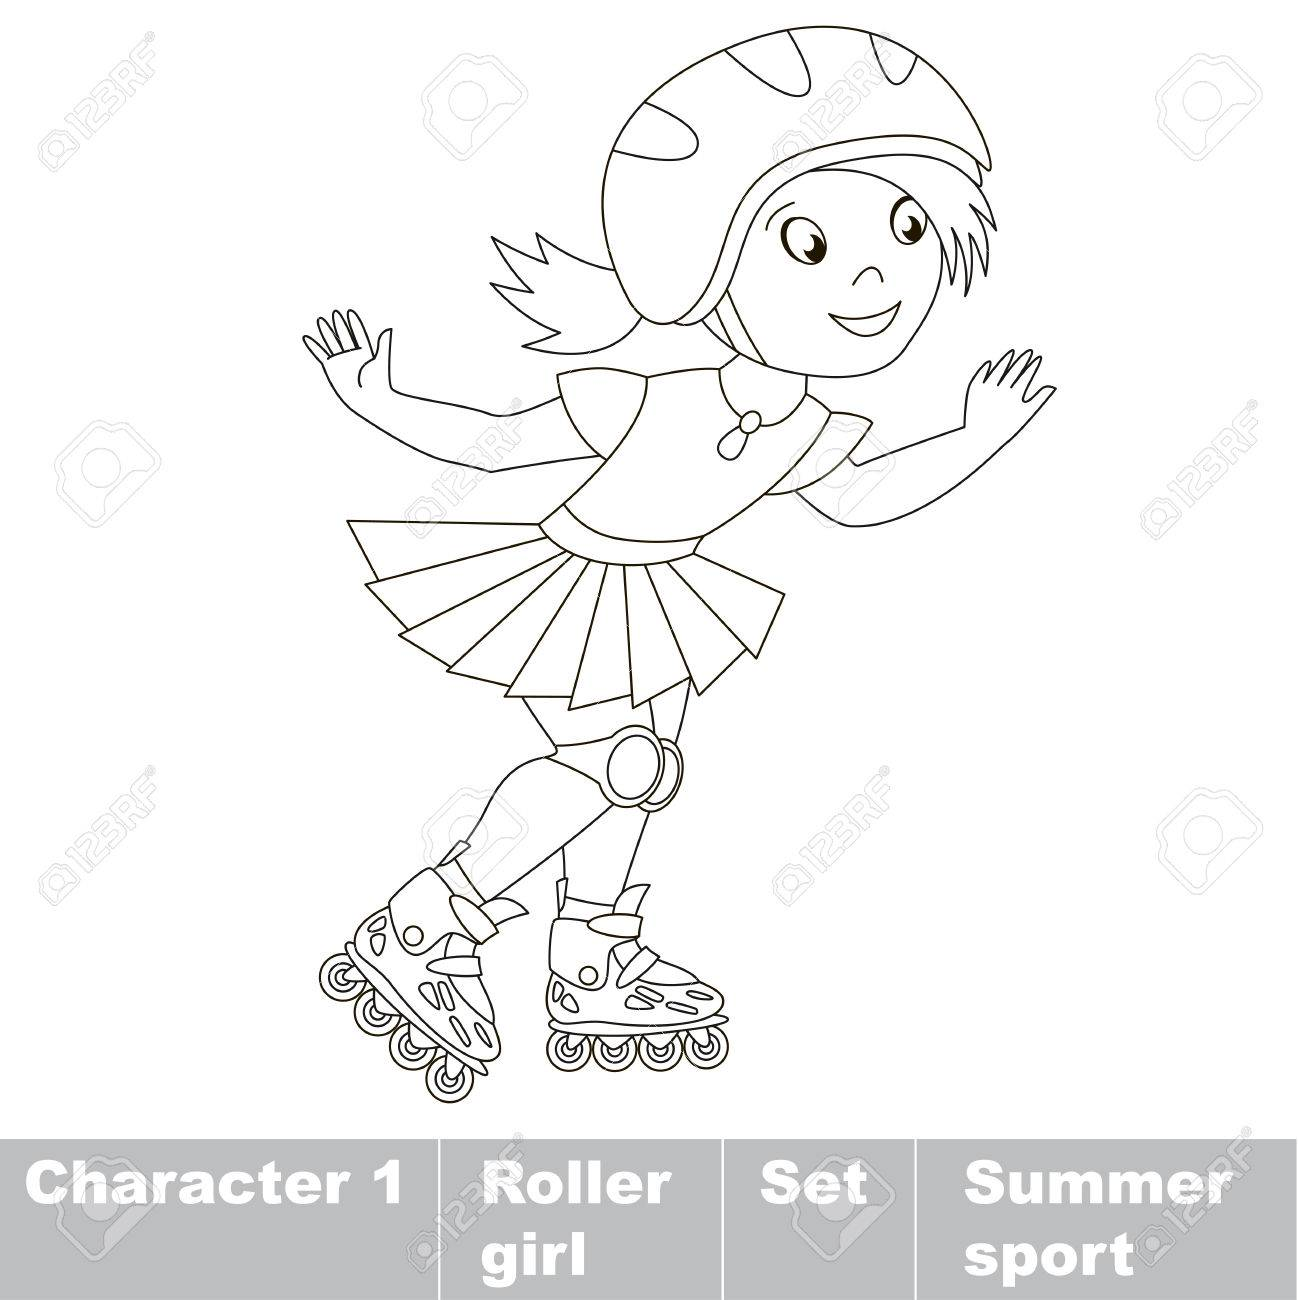 Roller skates coloring pages - Young